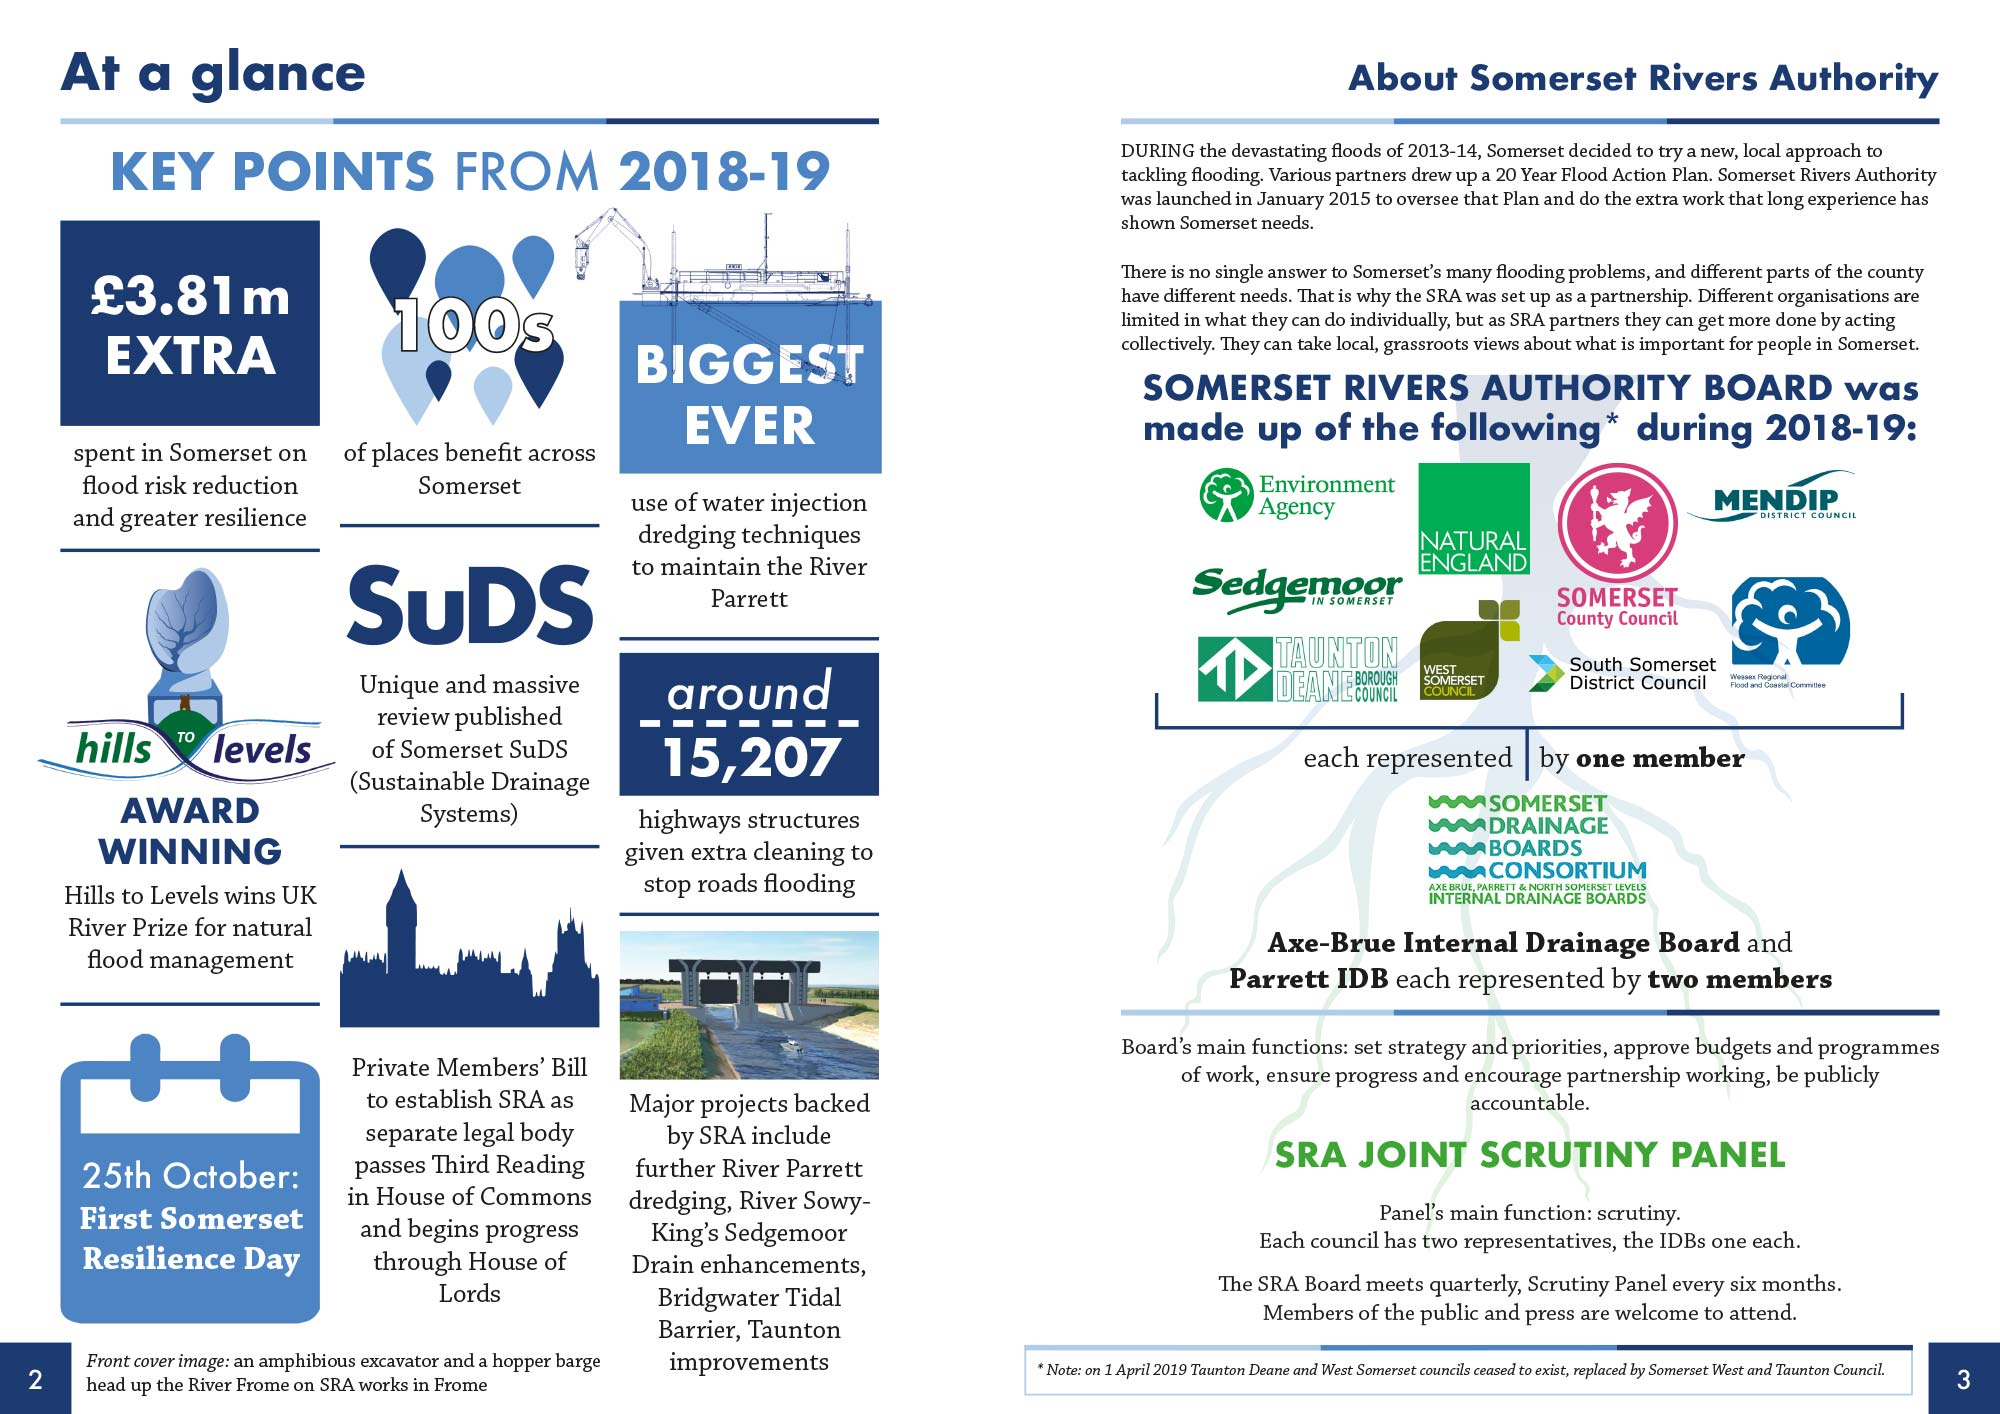 At a Glance section of the Somerset Rivers Authority Annual Report